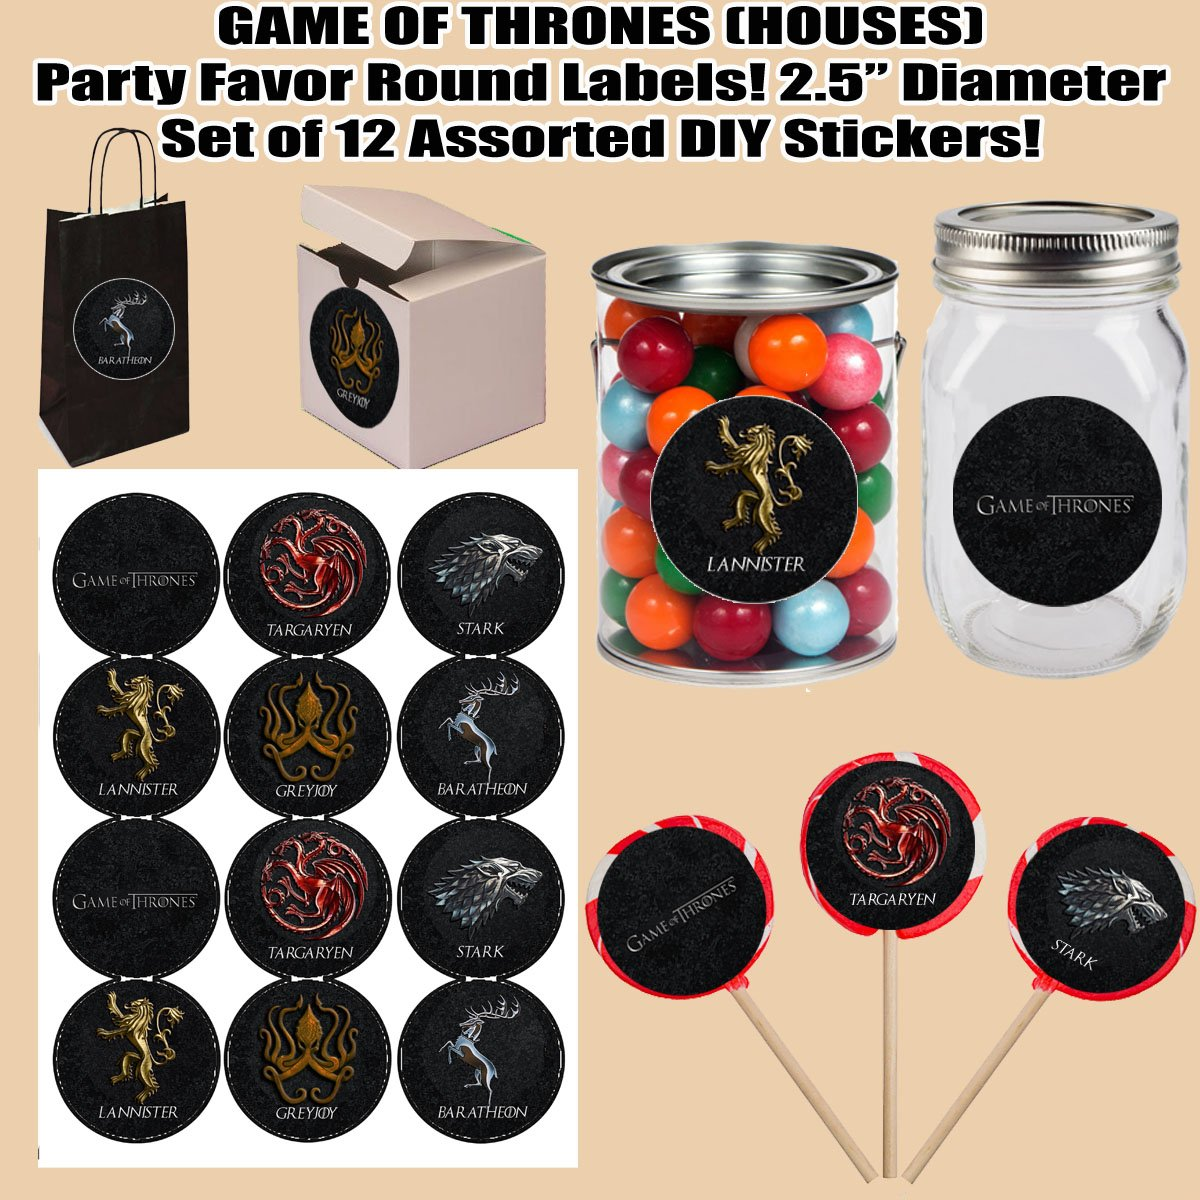 Game Of Thrones Party Ideas The Seven Kingdoms Of Westeros